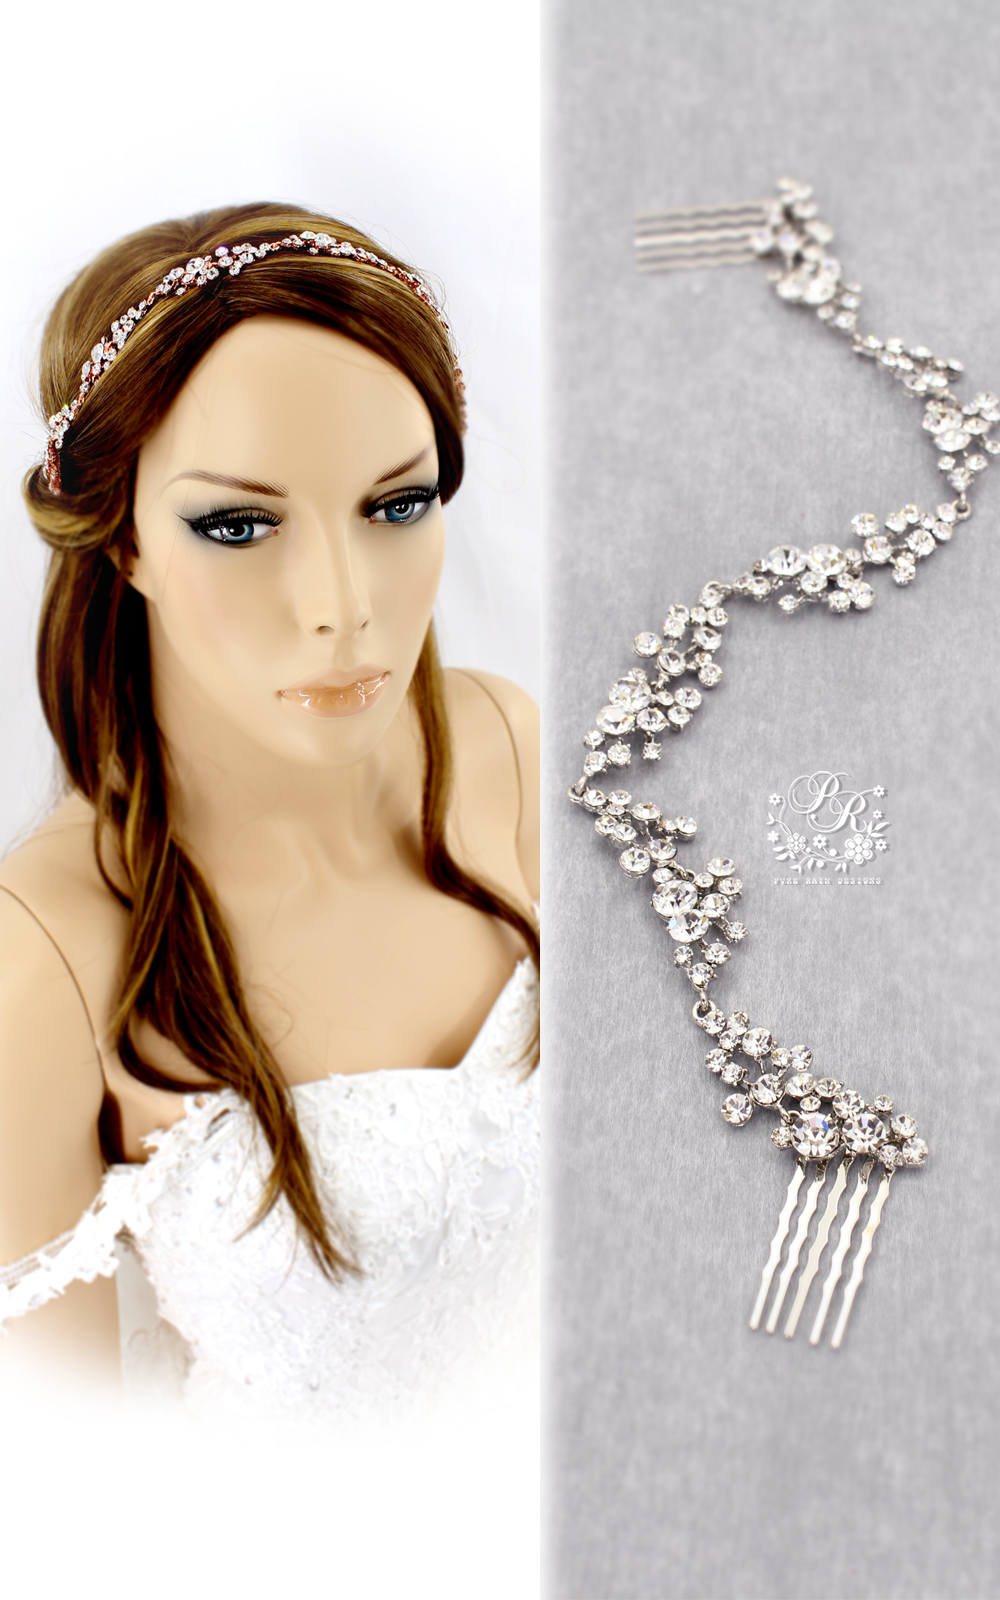 Wedding Hairpiece Rhinestone Hair Comb Bridal Jewelry Accessory Headband Meteor